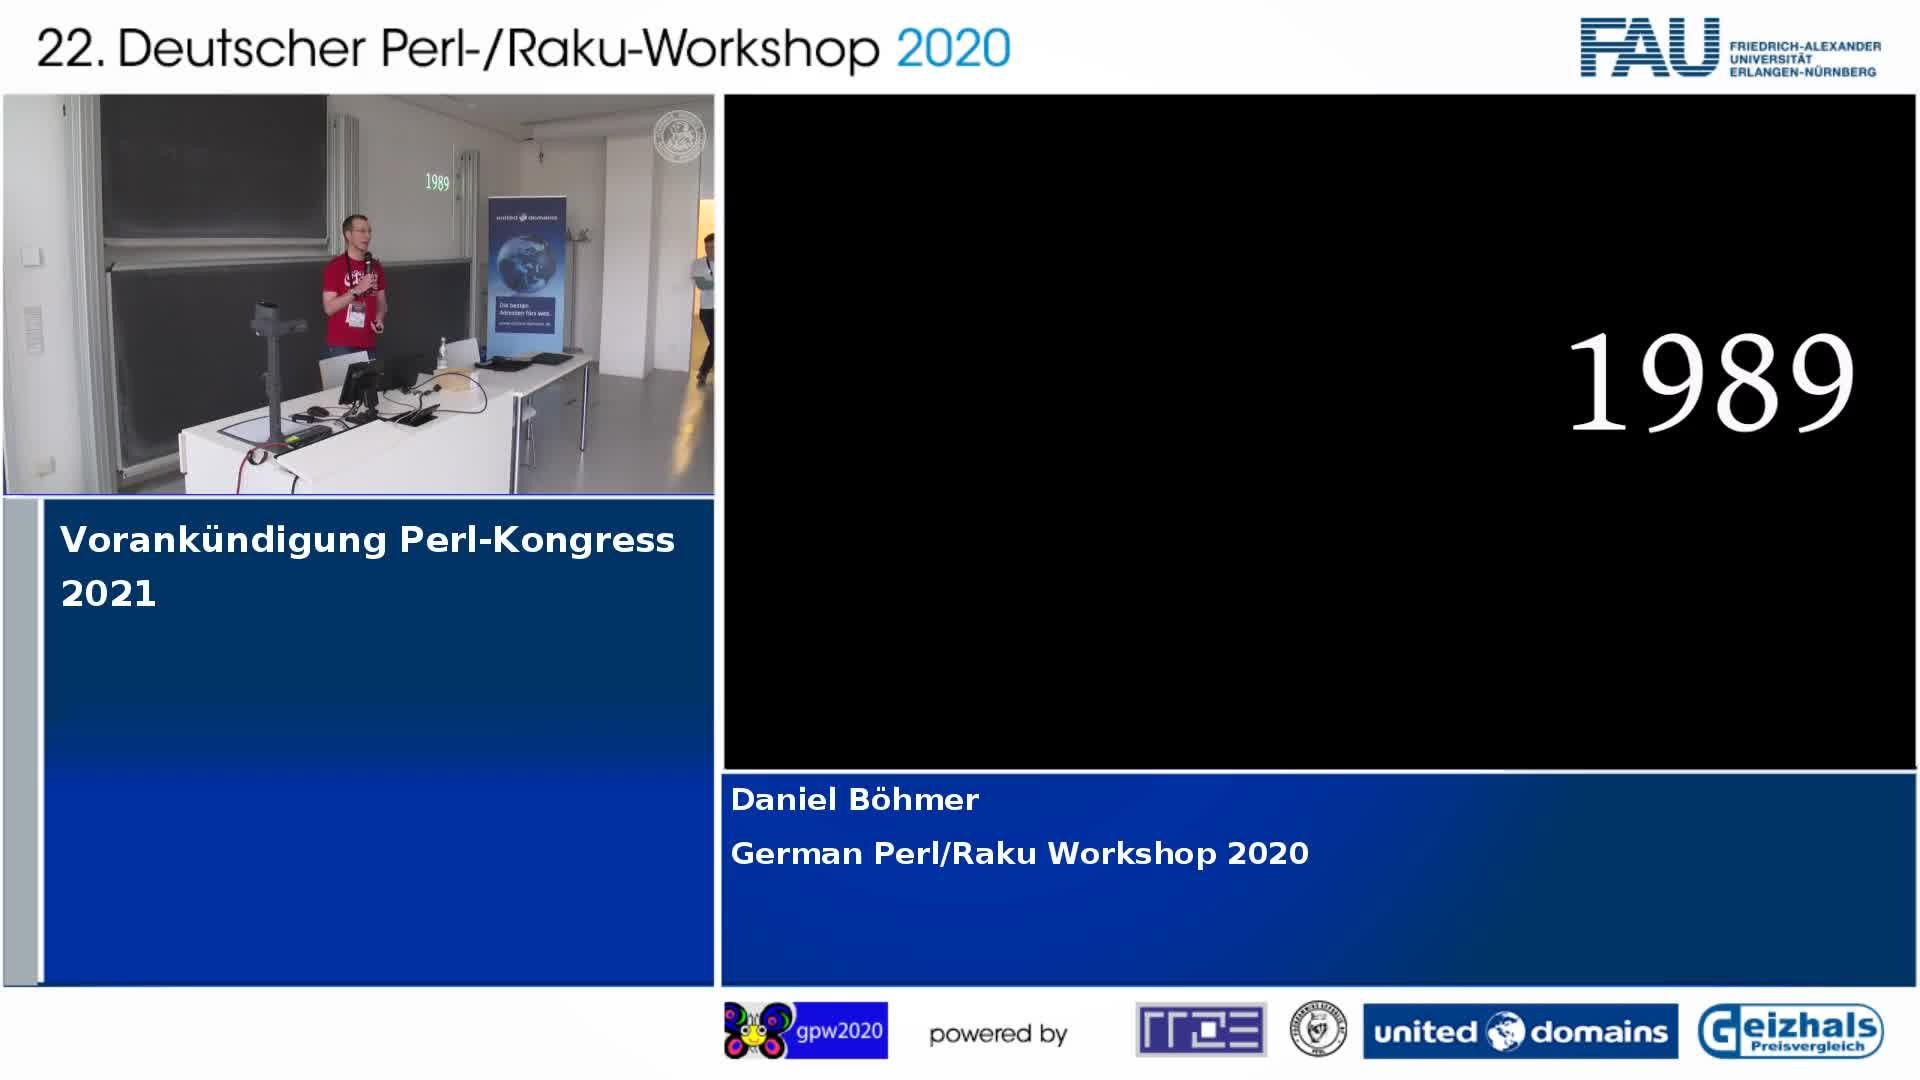 Vorankündigung Perl-Kongress 2021 preview image